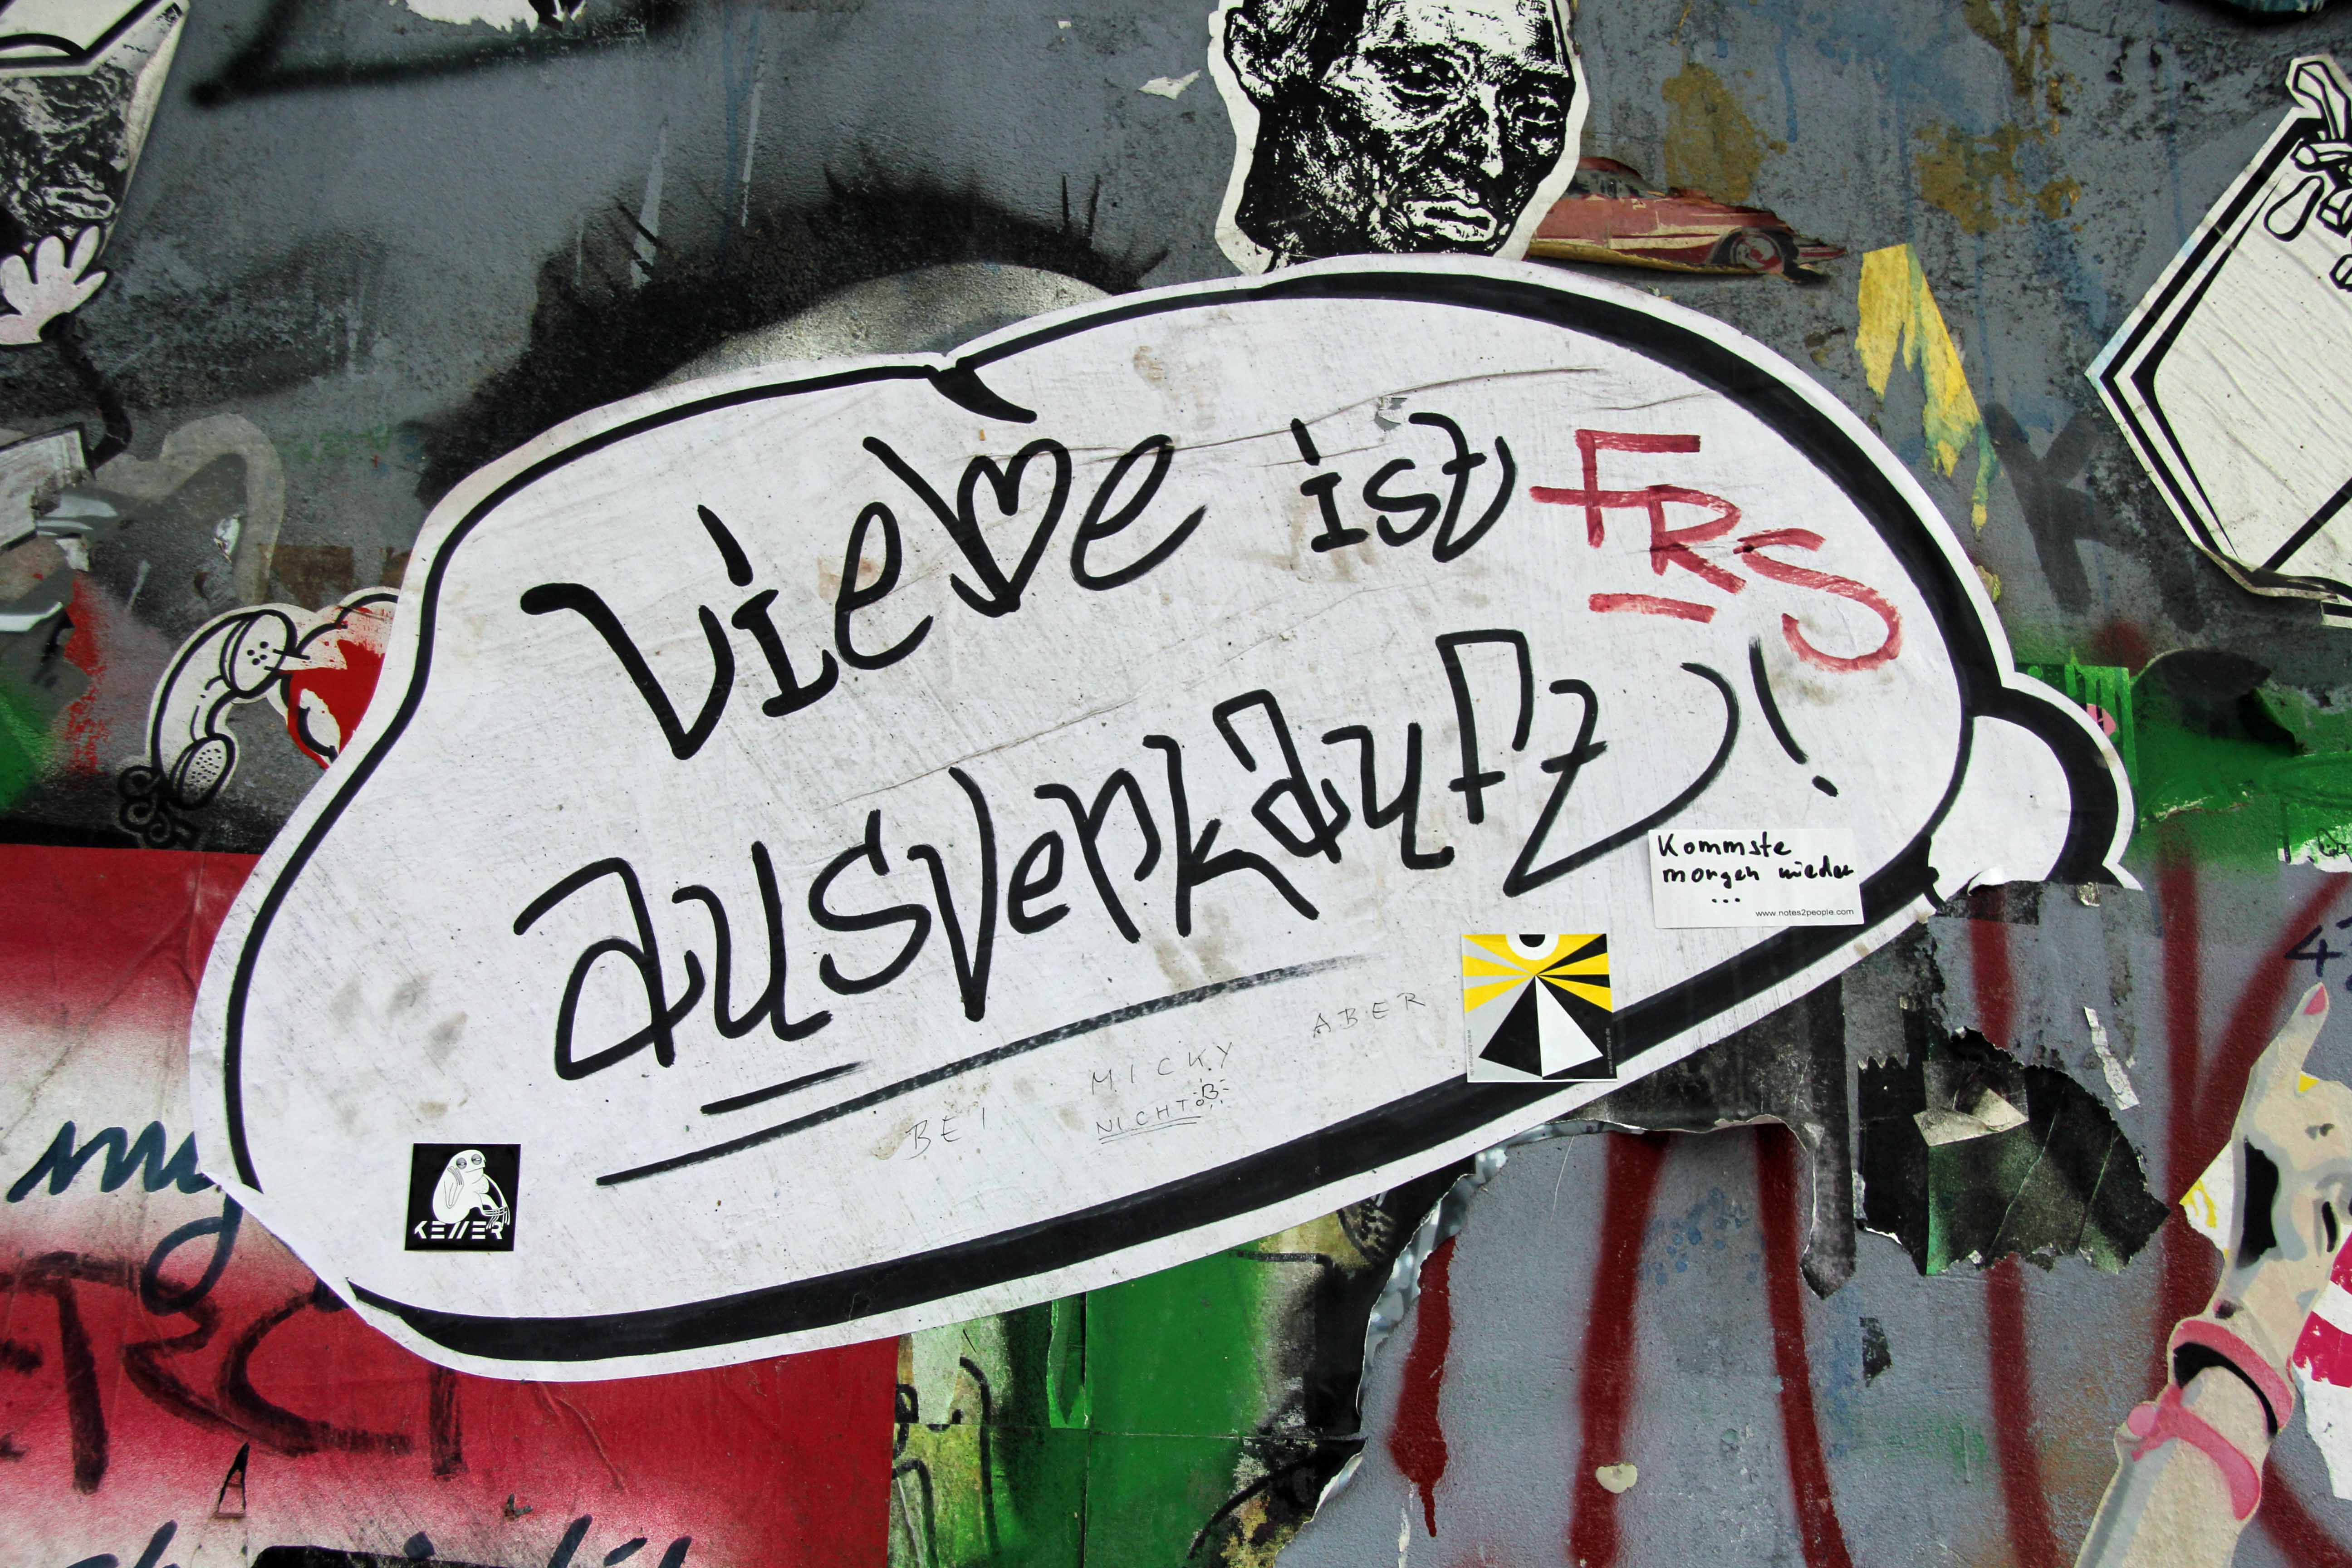 Liebe ist ausverkauft! (Love is Sold Out): Street Art by Unknown Artist in Berlin